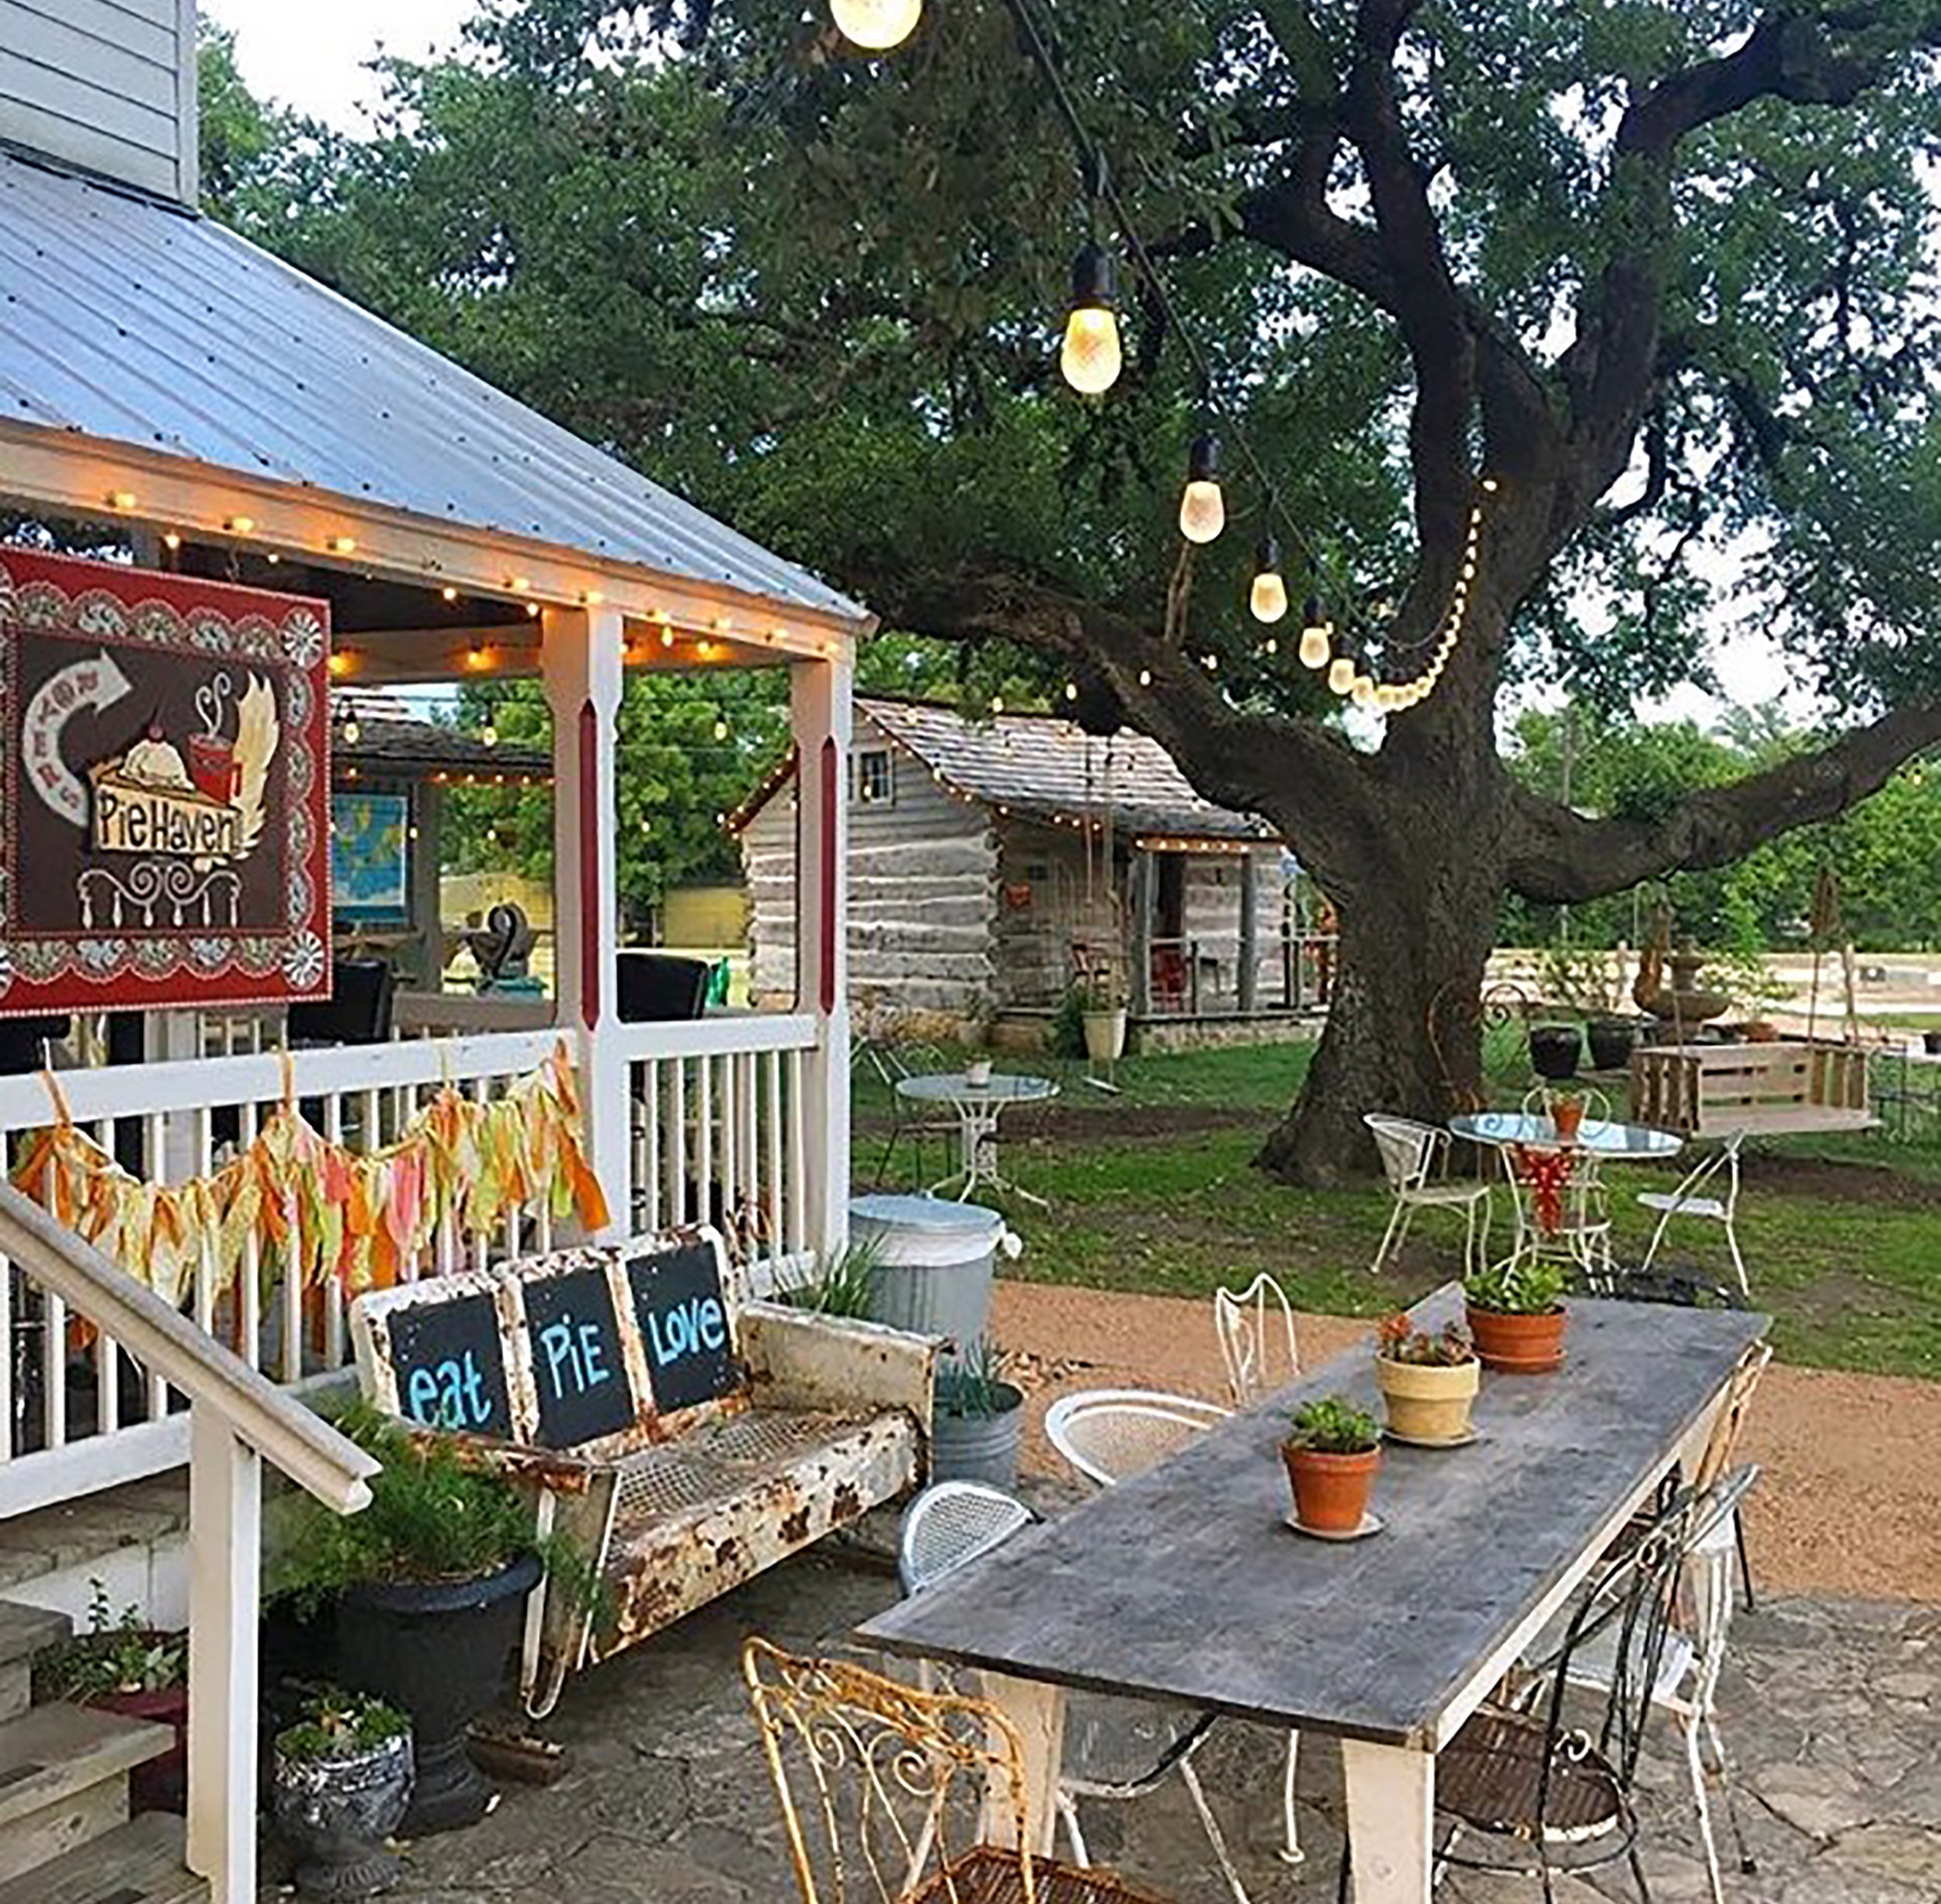 The Haven - Located under the oak trees on Henkel Square, Royers Pie Haven is the perfect place to relax with friends for a slice of pie and a cup of coffee.